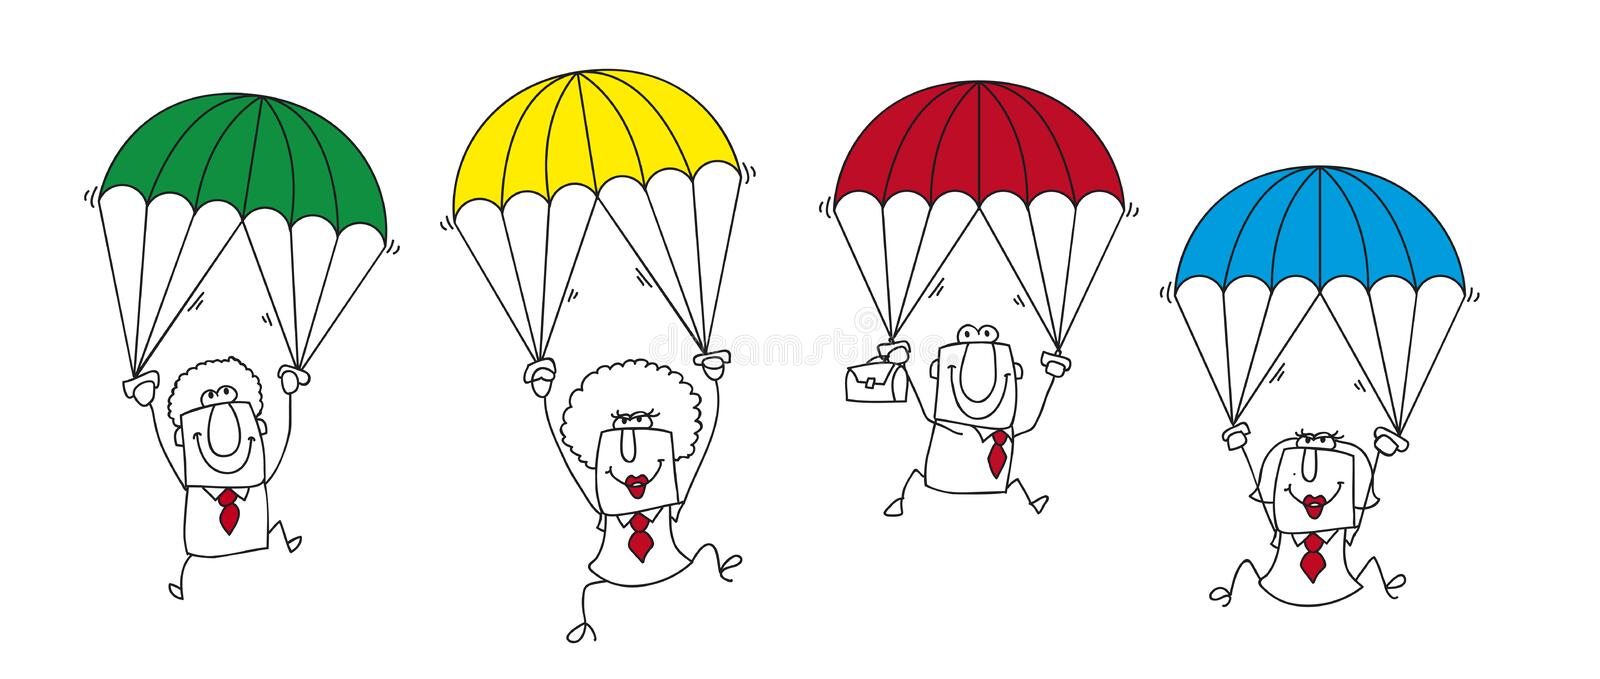 Paratrooper business team stock illustration